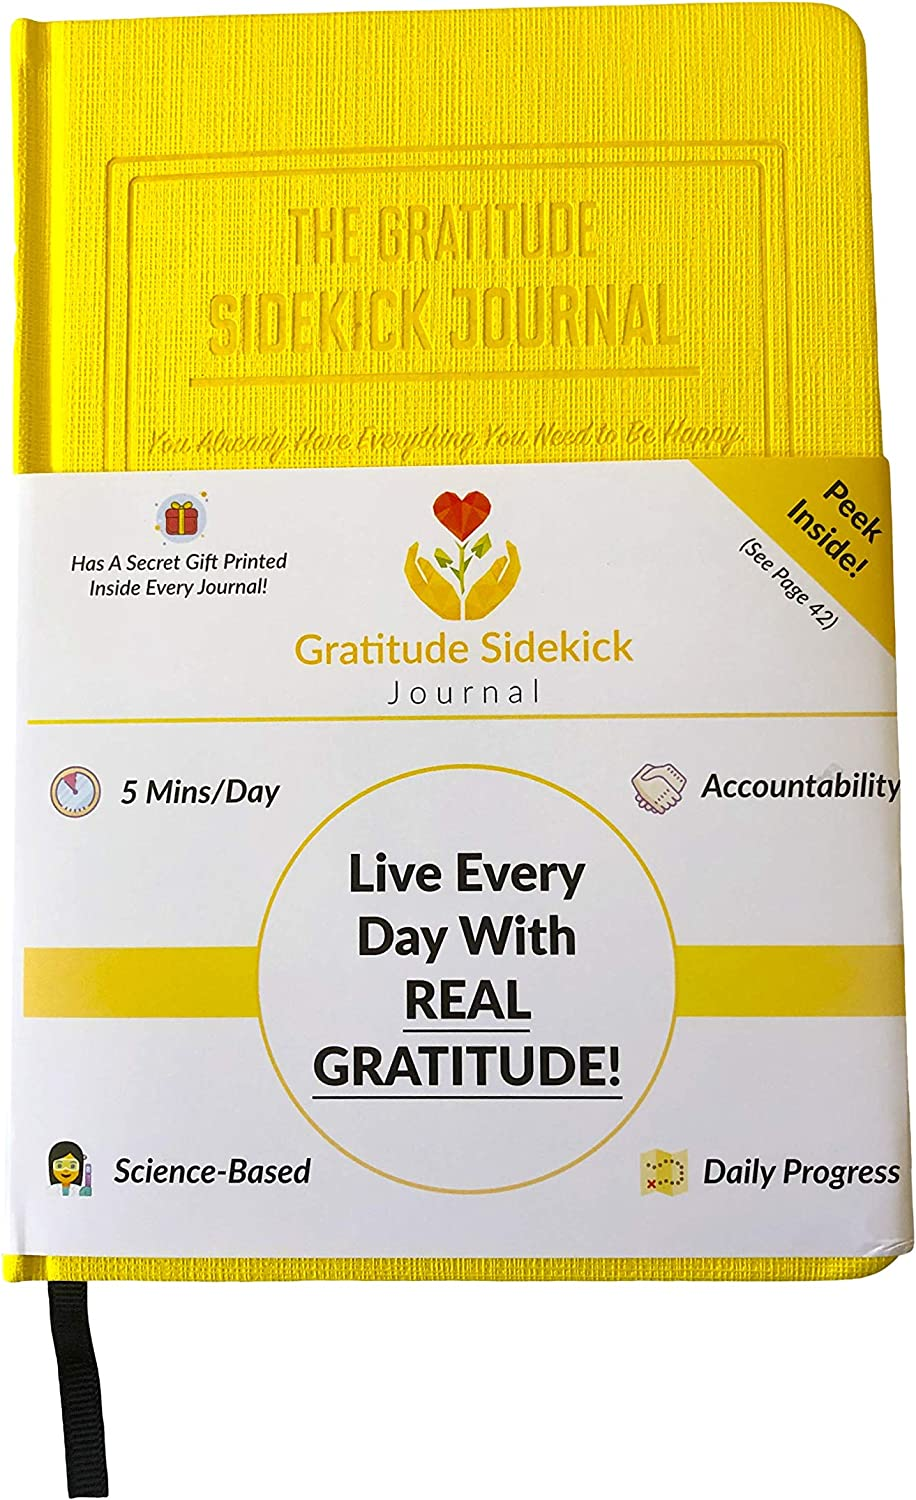 Free Amazon Promo Code 2020 for The Gratitude Sidekick Journal